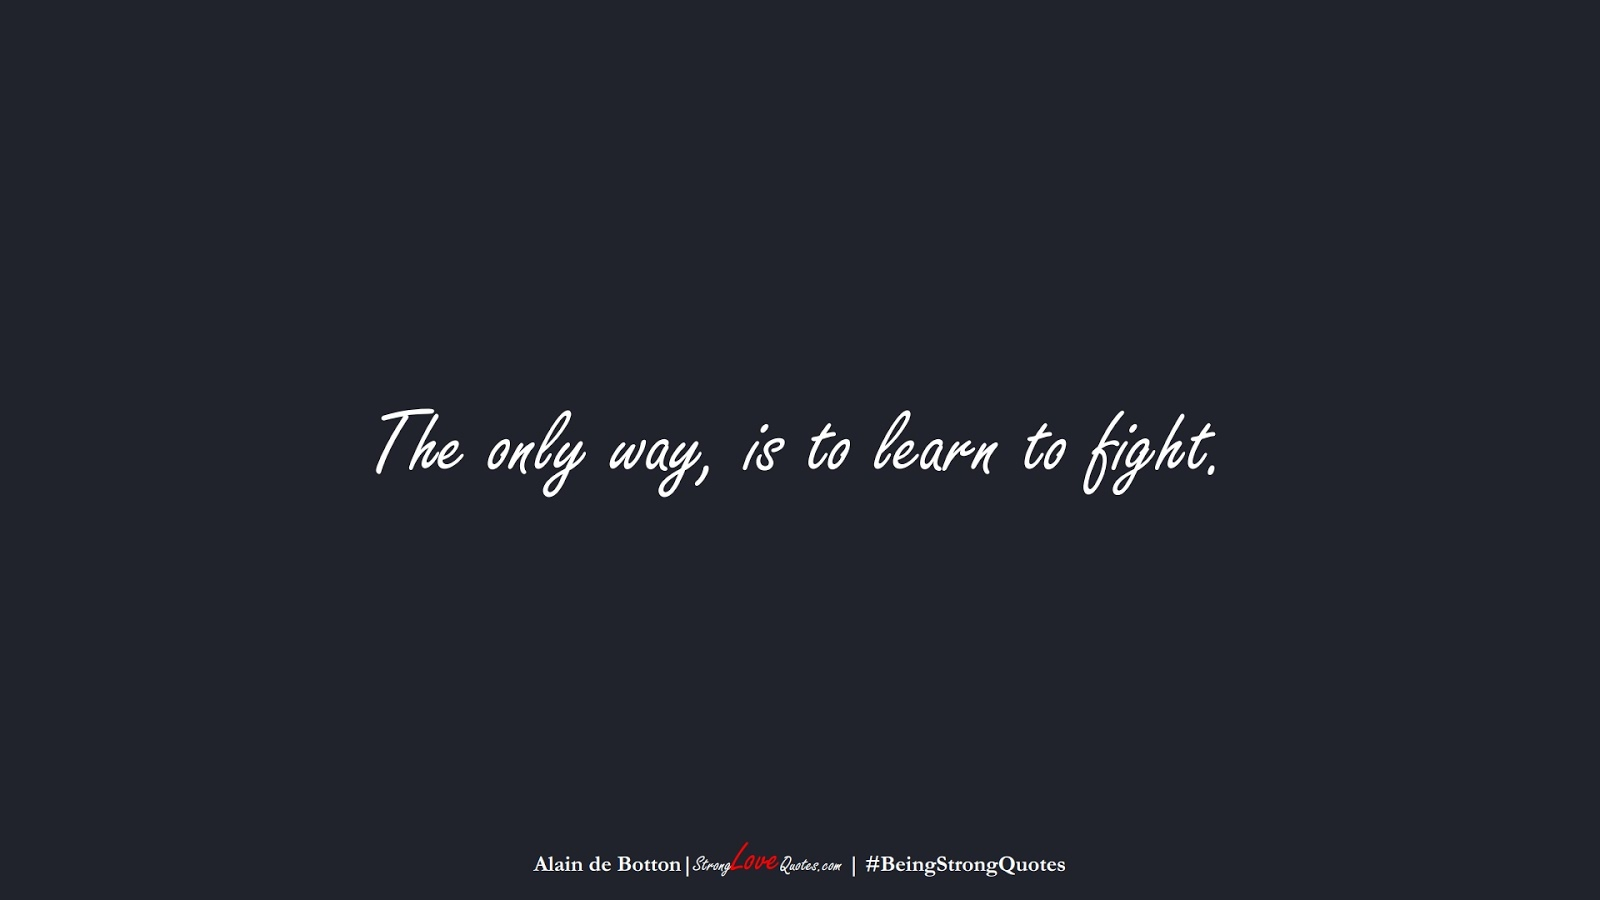 The only way, is to learn to fight. (Alain de Botton);  #BeingStrongQuotes